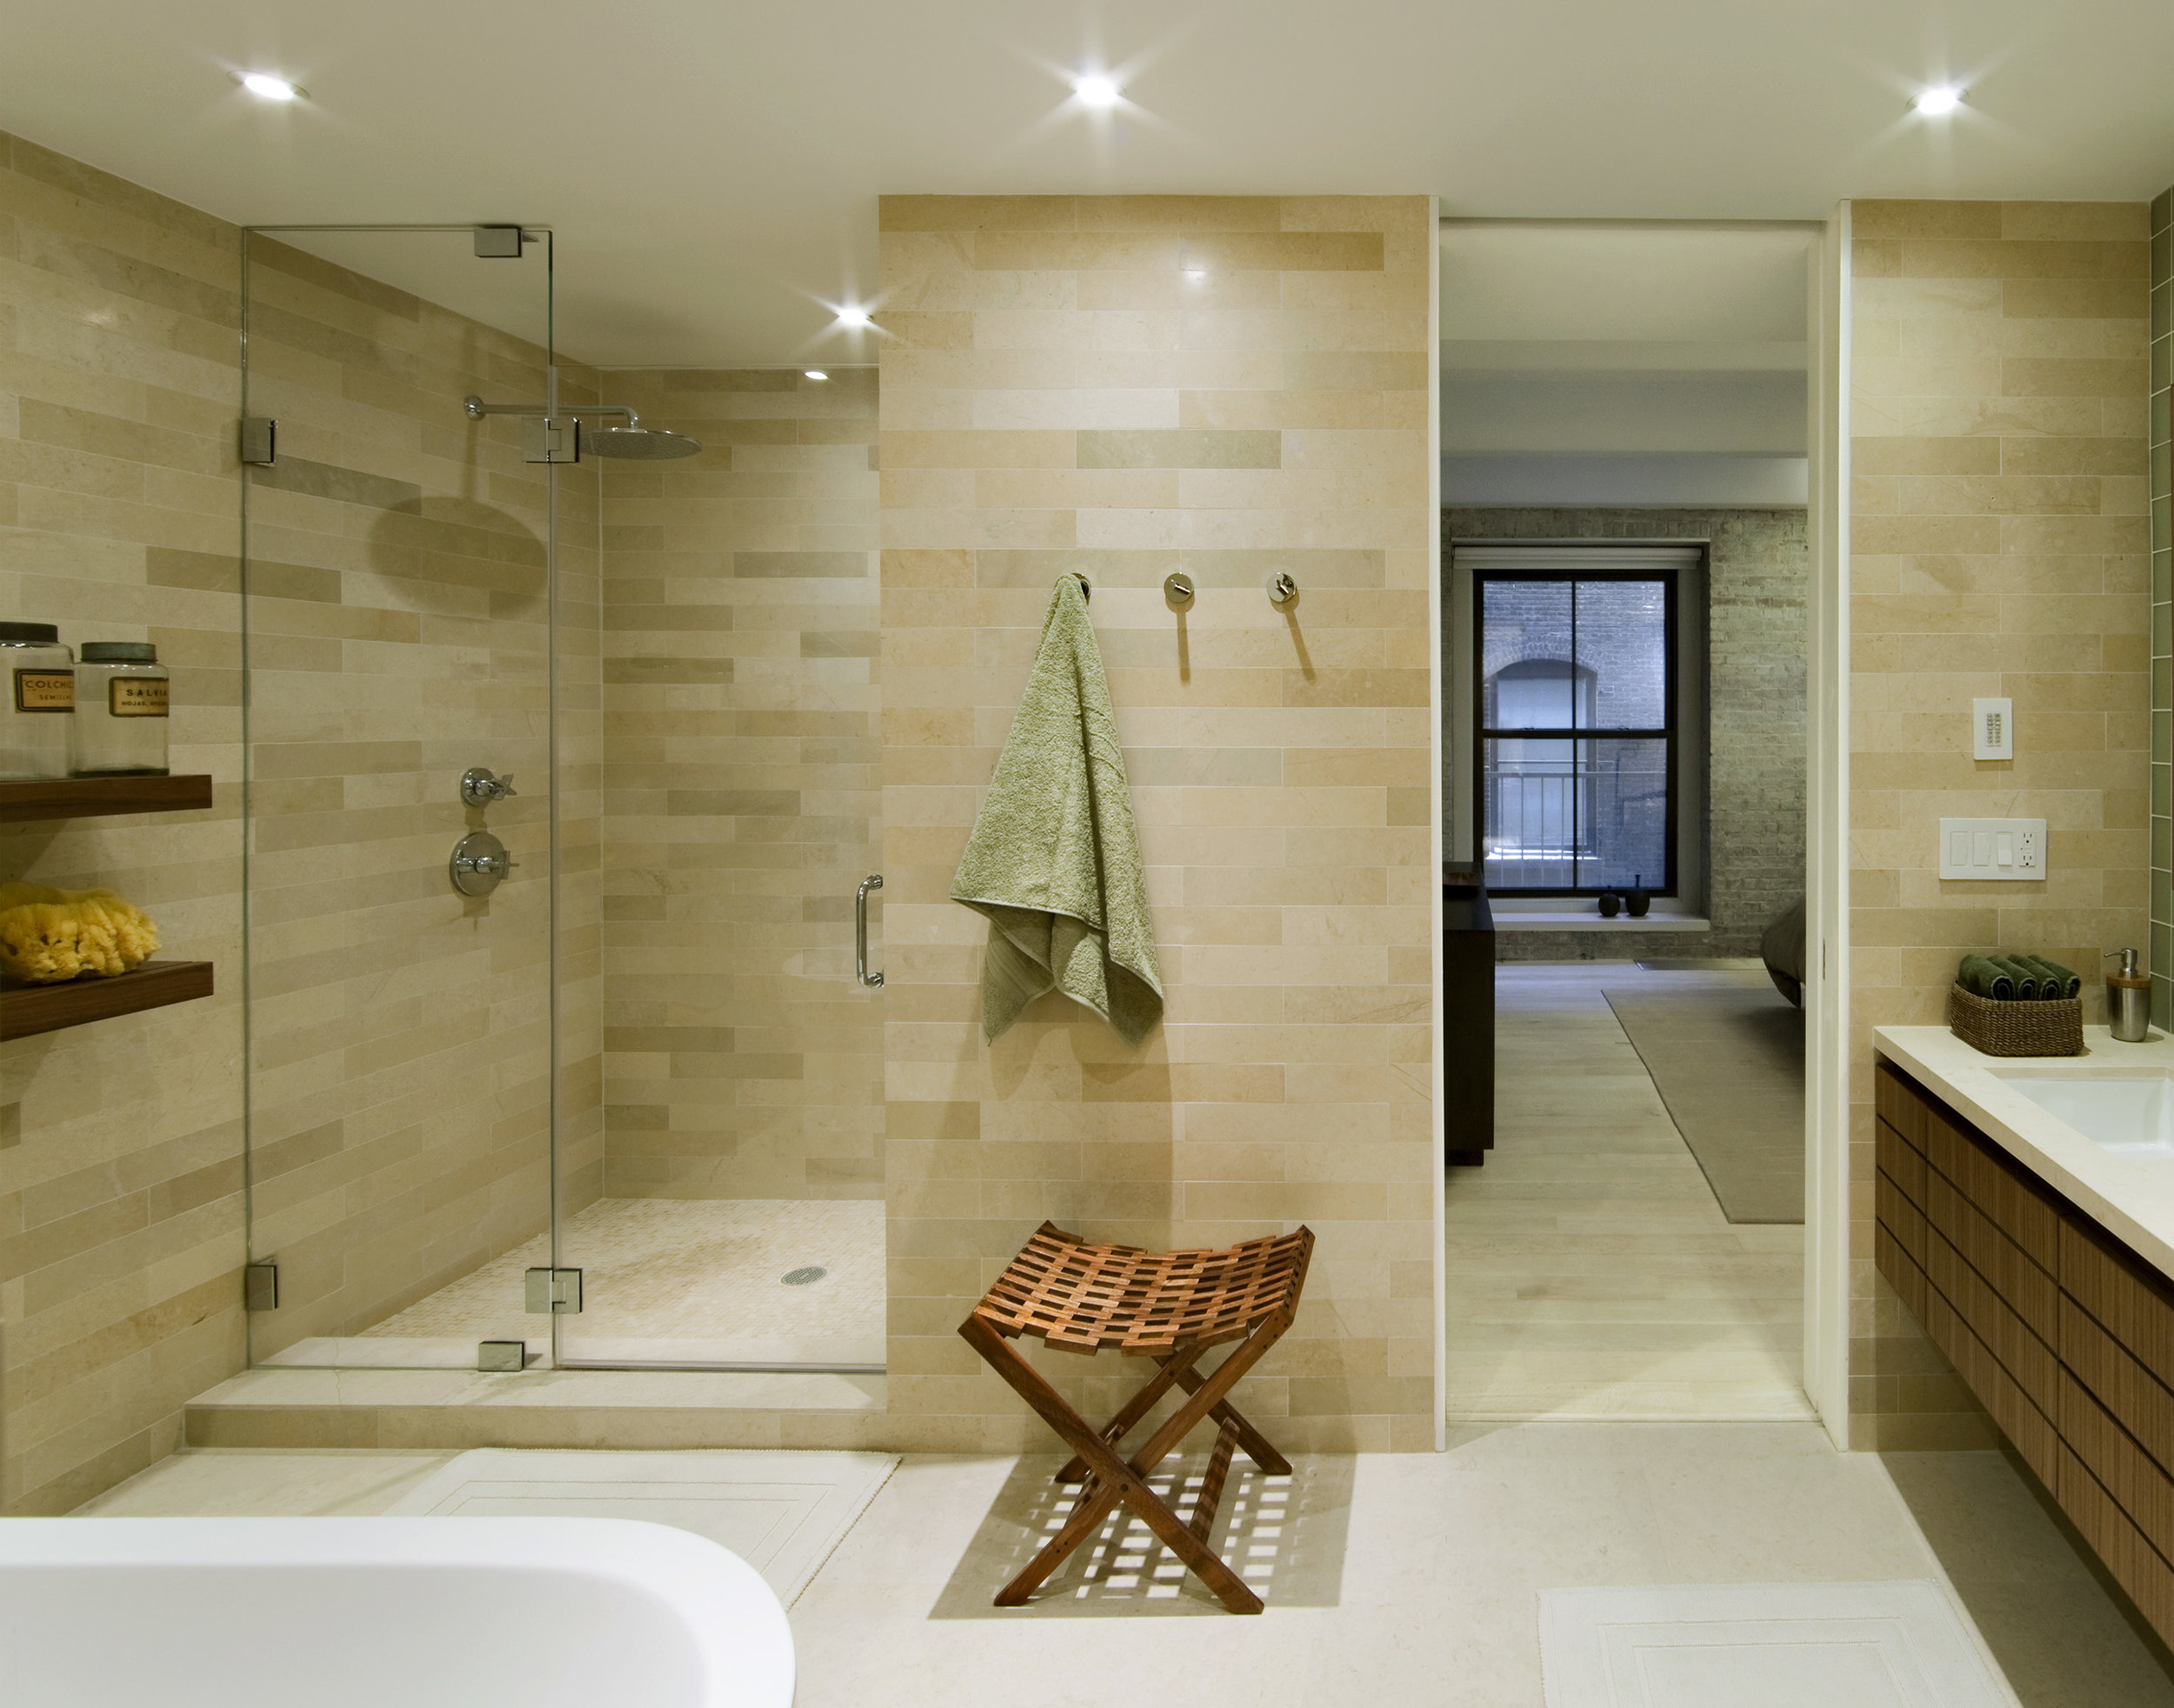 8-Master Bathroom.jpg